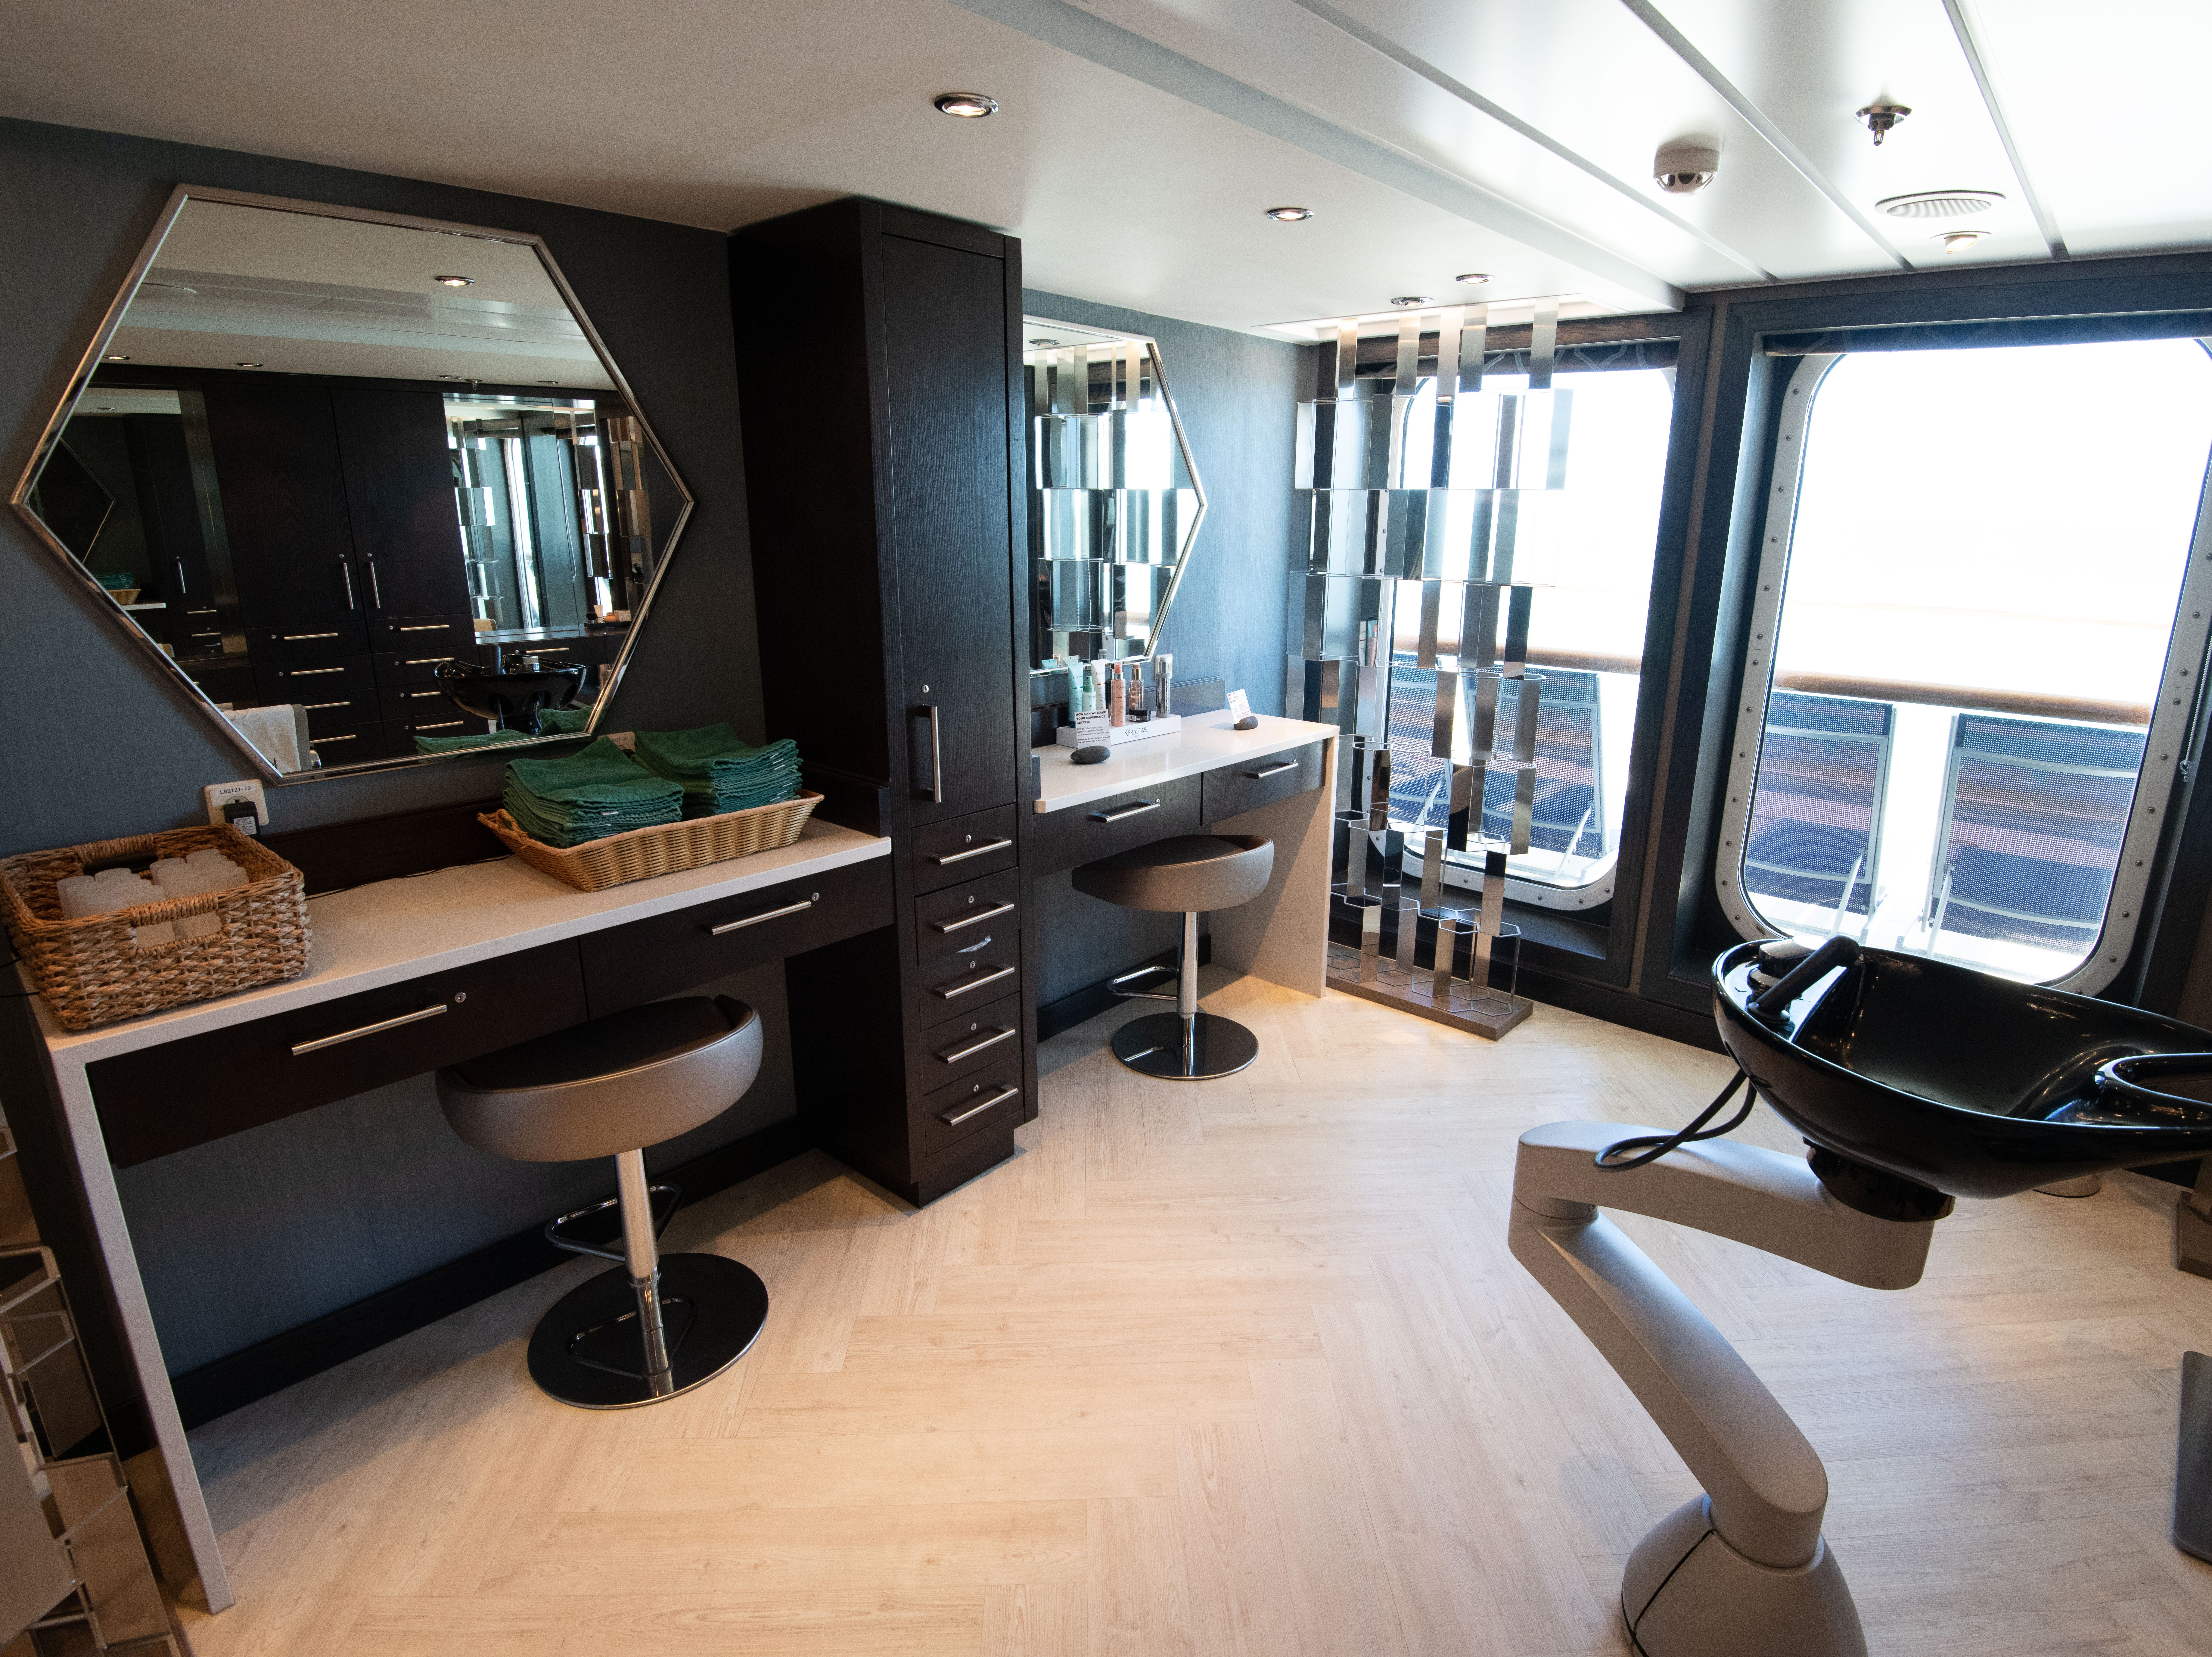 The Mandara Spa on Pride of America has a full-service salon offering a wide range of hair and nail treatments. Prices start at $35 for a shampoo and blow dry.